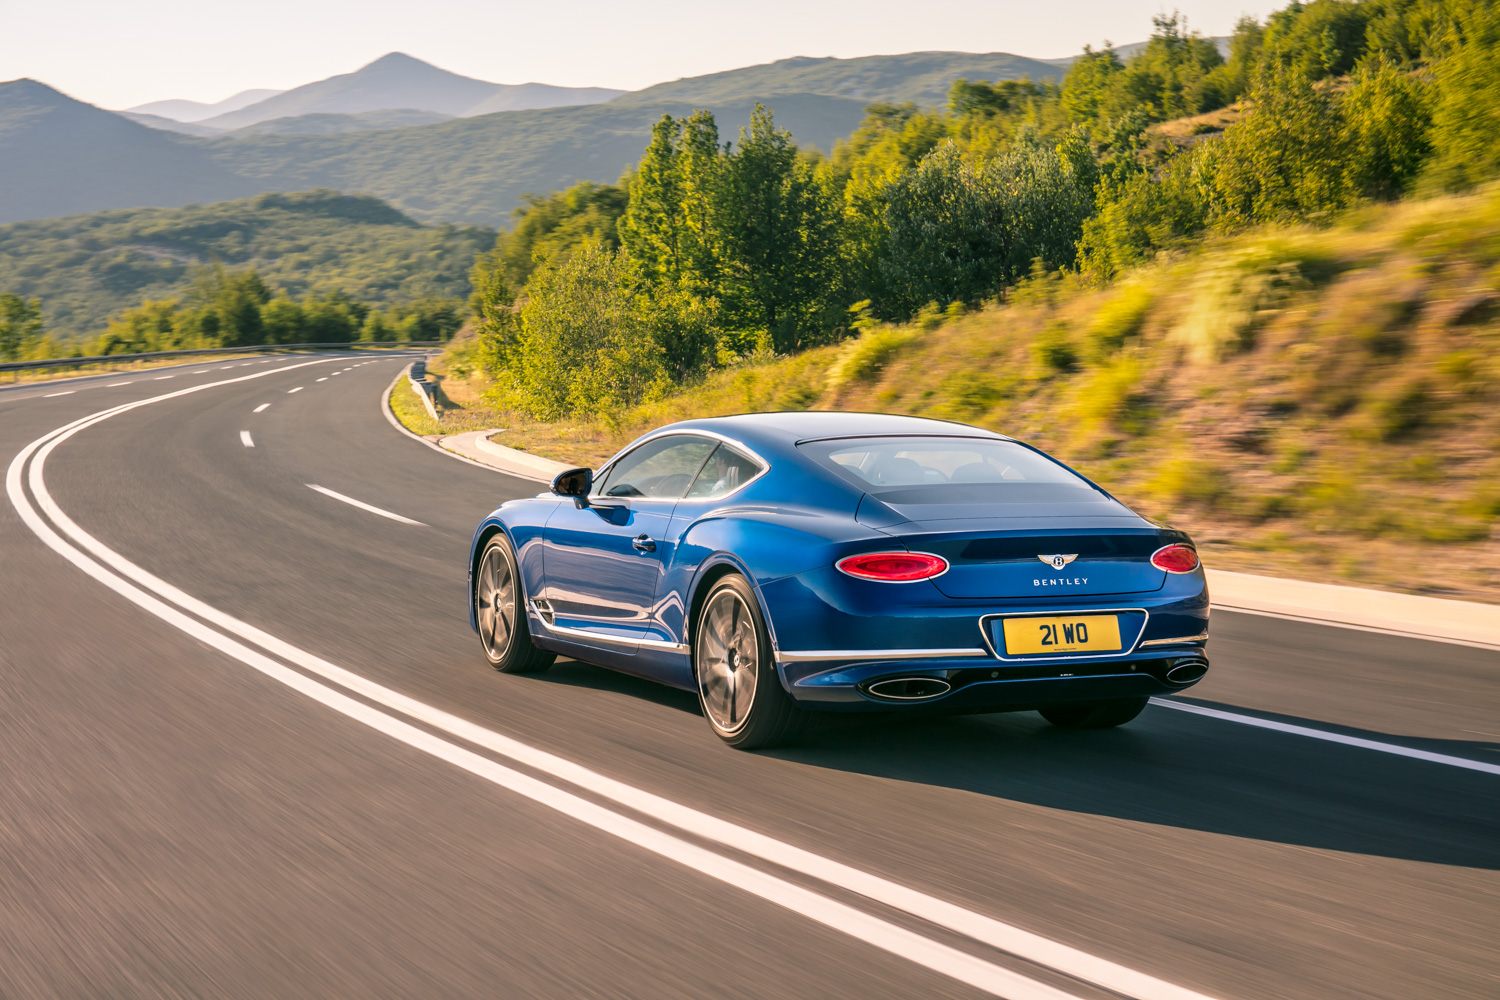 2019 Bentley Continental GT rear 3/4 driving